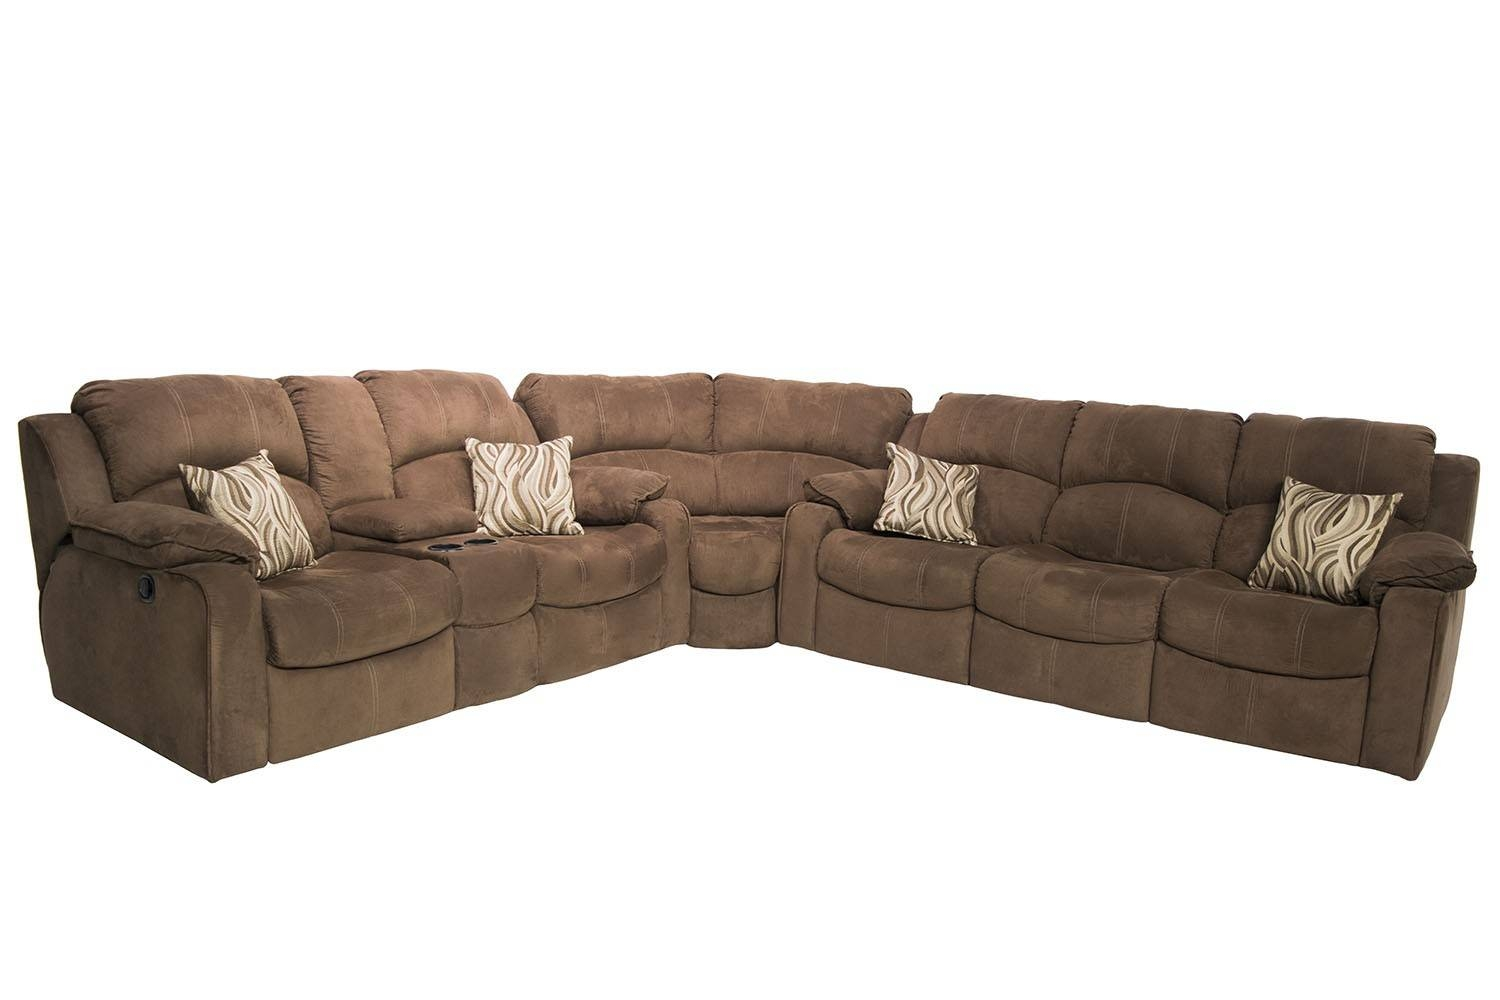 Tornado Reclining Sofa & Power Reclining Loveseat Sectional In regarding Media Sofa Sectionals (Image 24 of 25)